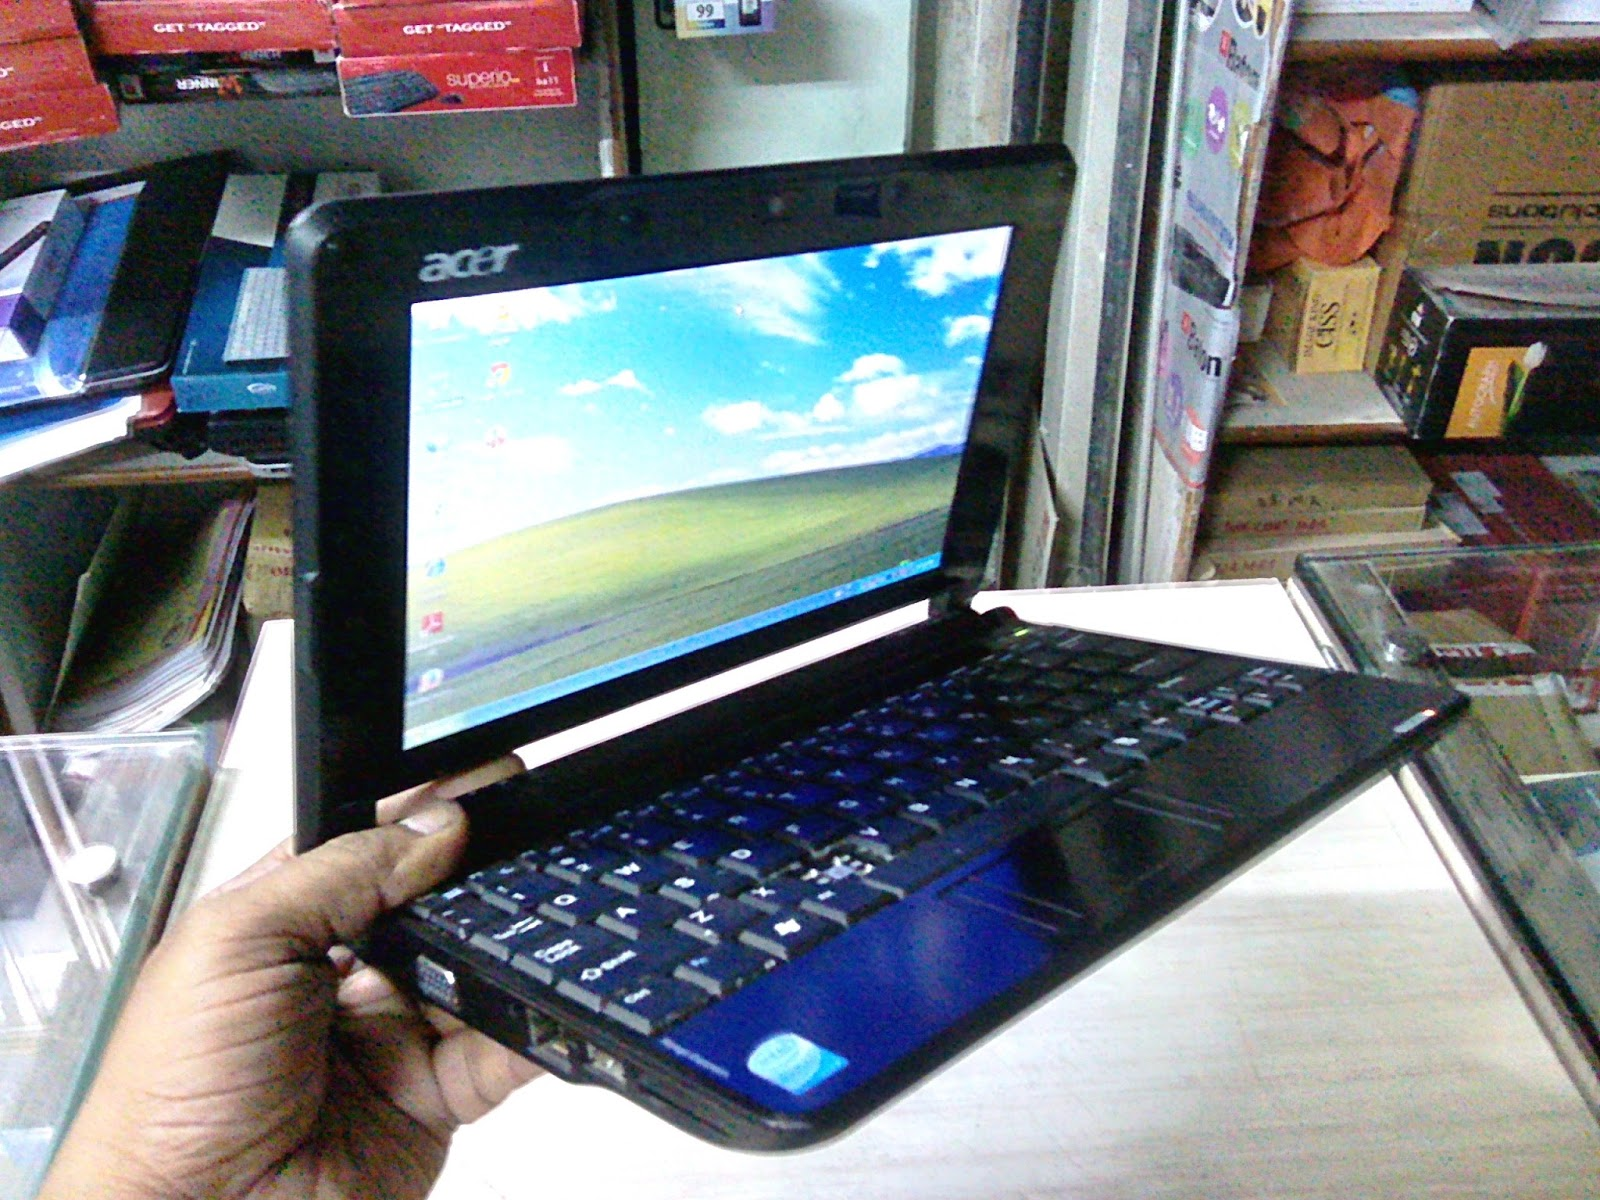 acer aspire one zg5 lan drivers for xp